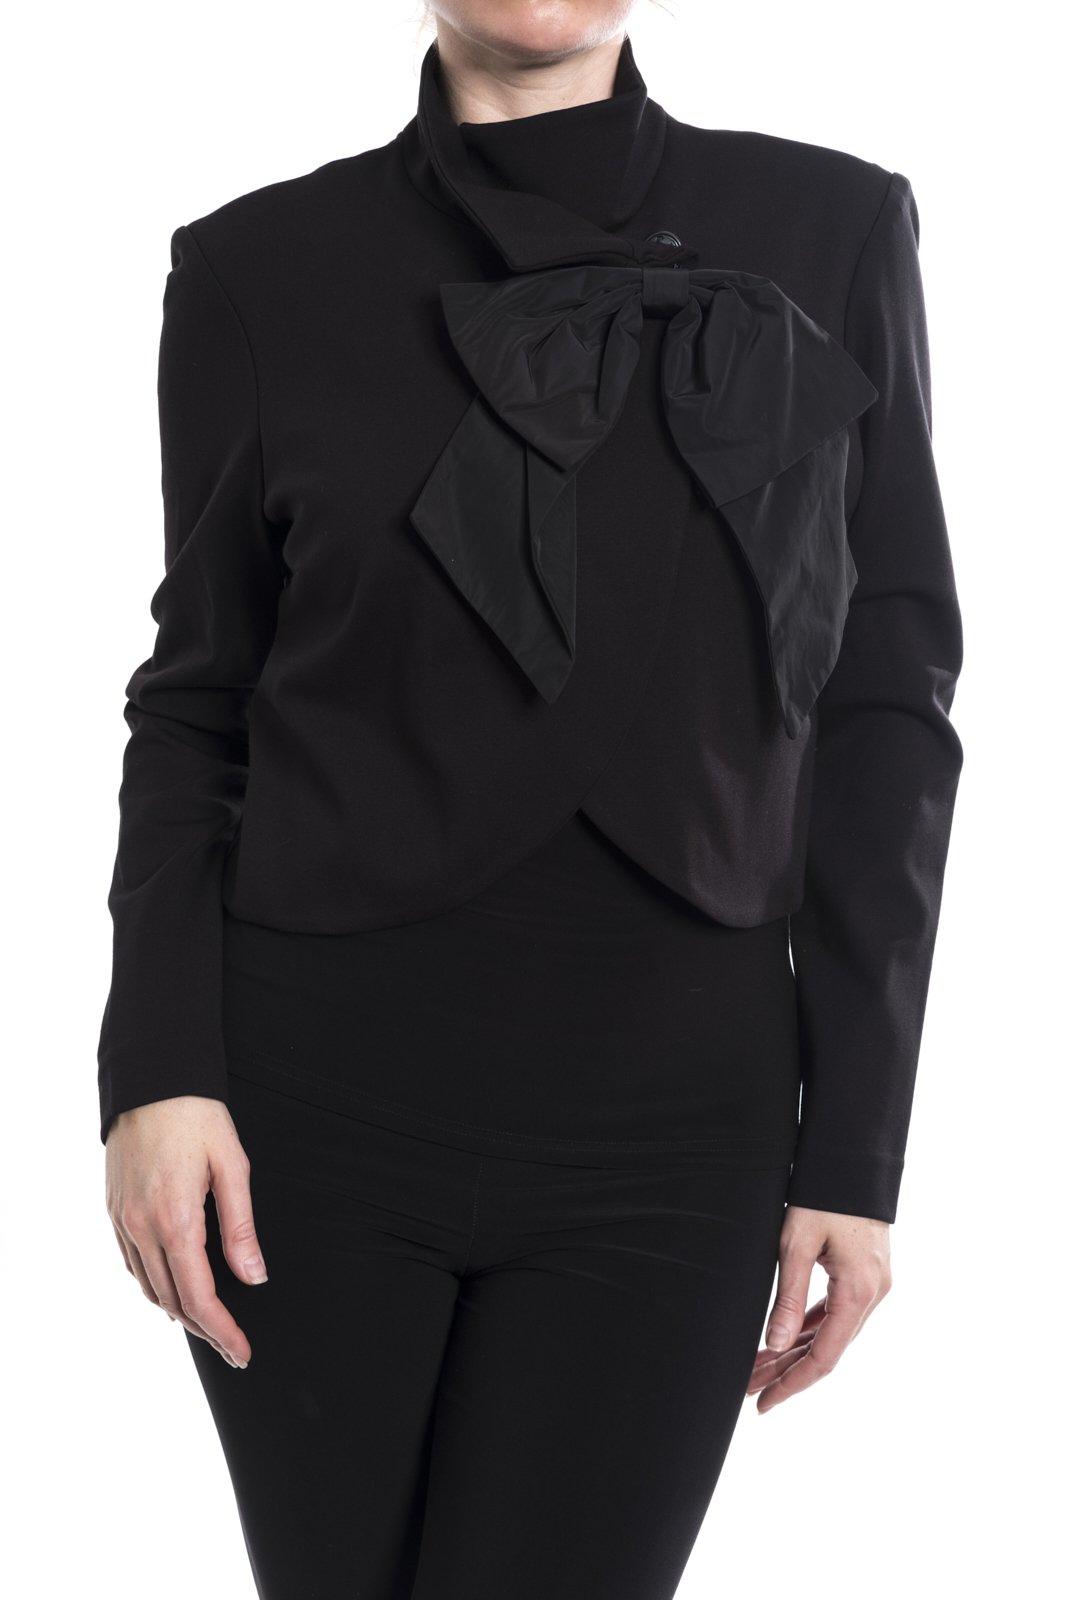 Joseph Ribkoff Cropped Jacket With Bow Accent Style 174676 Size 18 by Joseph Ribkoff